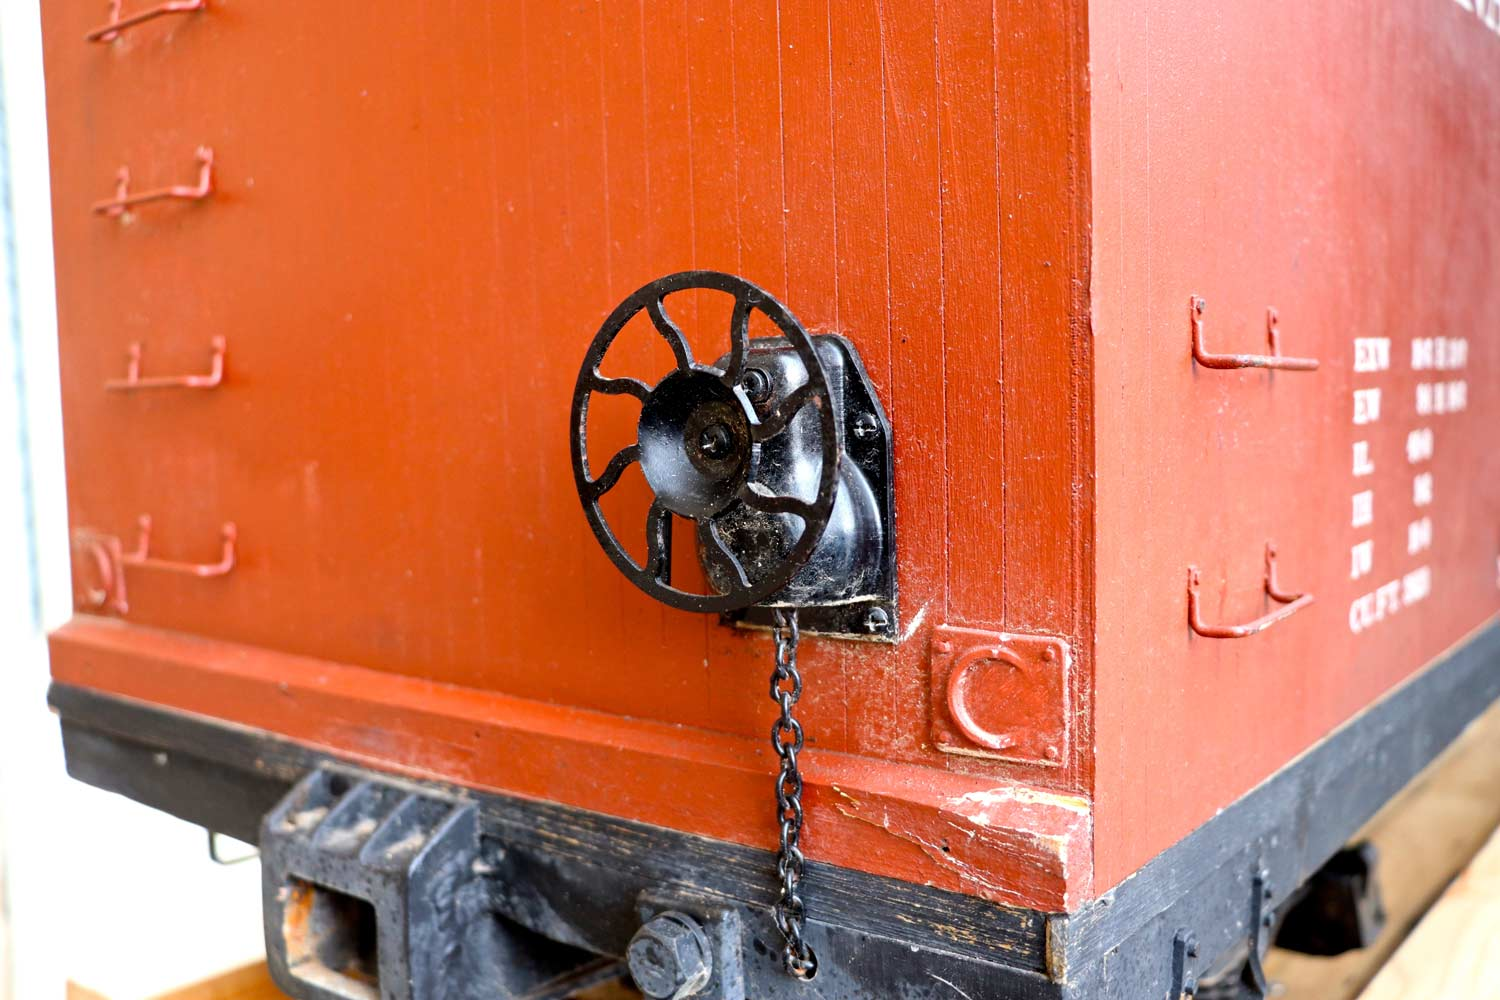 test 7-and-a-quarter-inch-brown-rayonier-hc-railroad-carriage-live-steam-for-sale-09